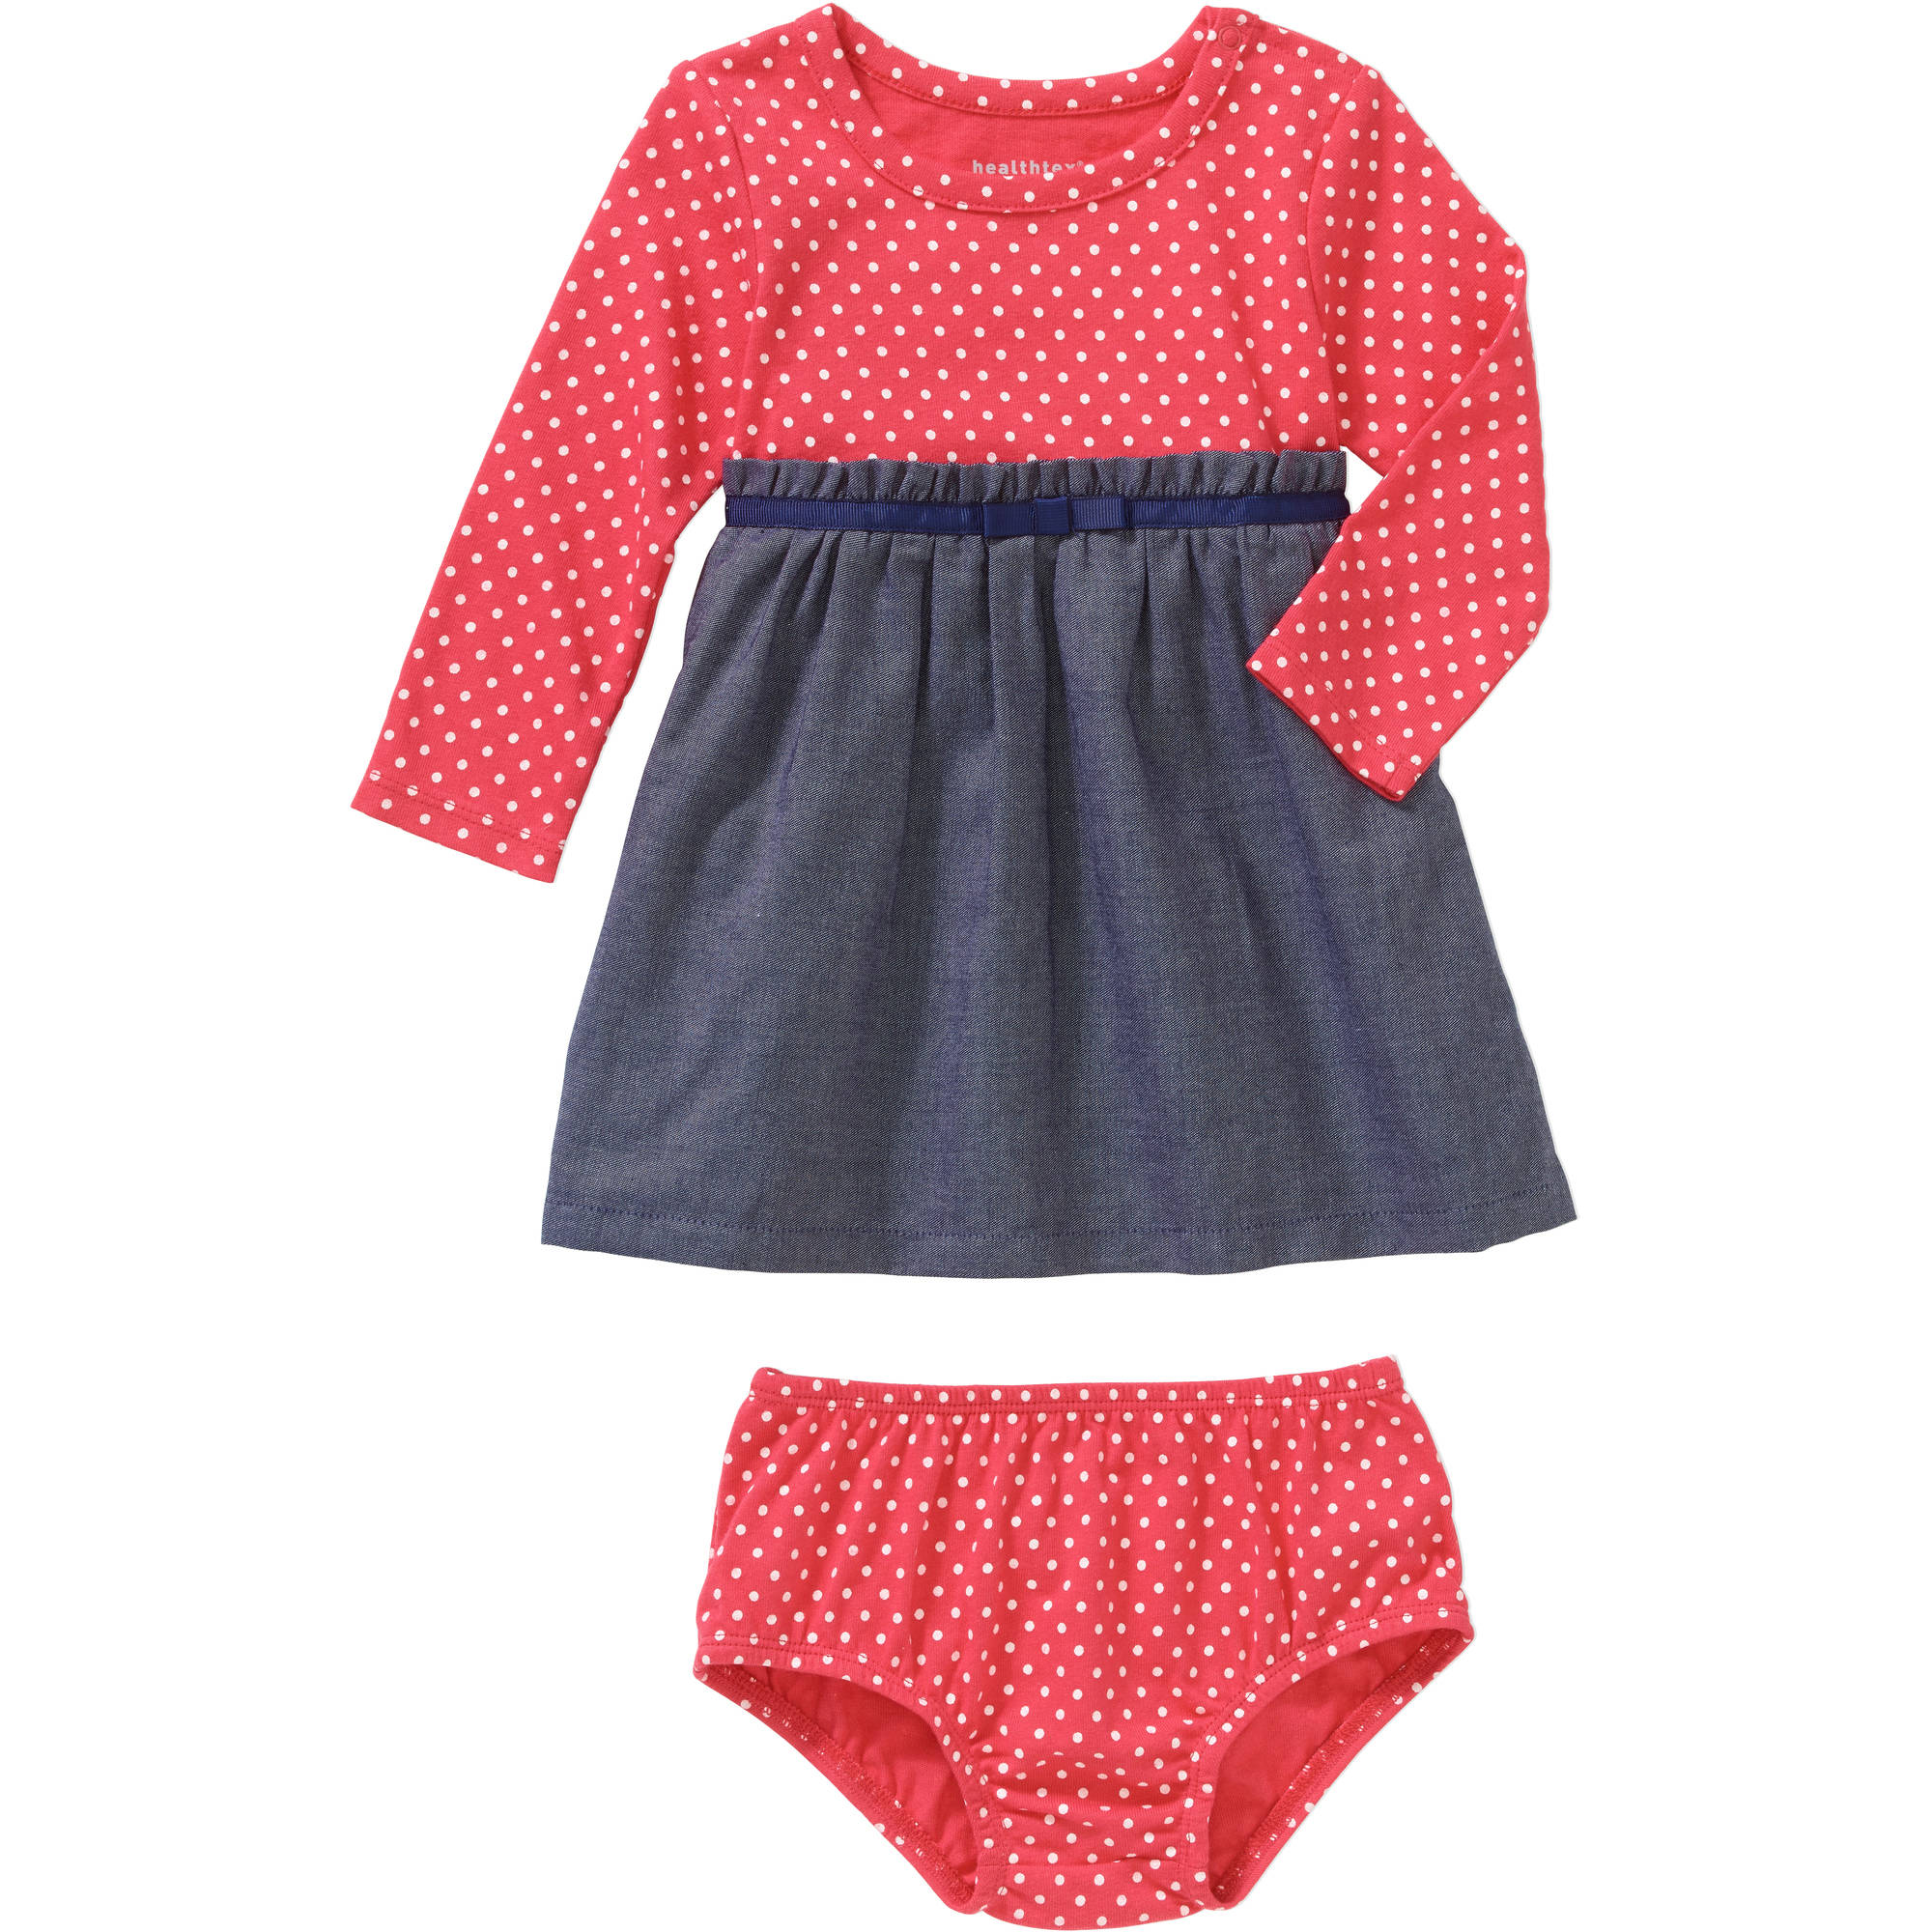 Healthtex Newborn Baby Girls' Knit Short Sleeve 2-Fer Dress and Bloomer Set